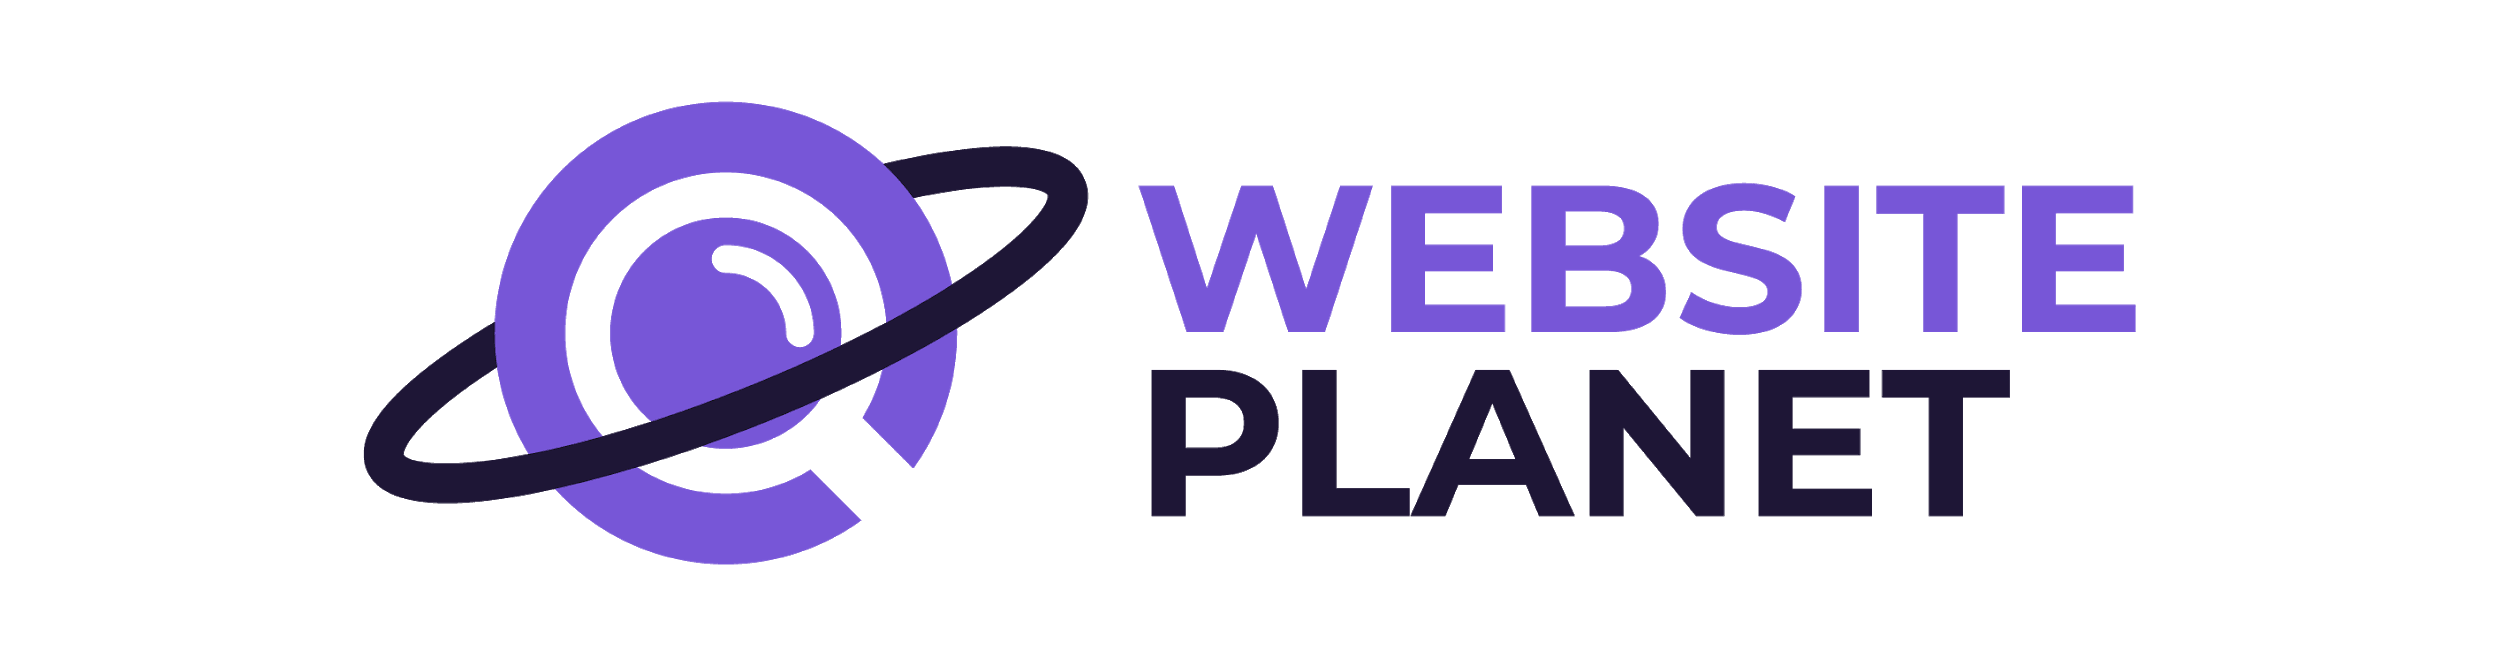 Website Planet sample logo